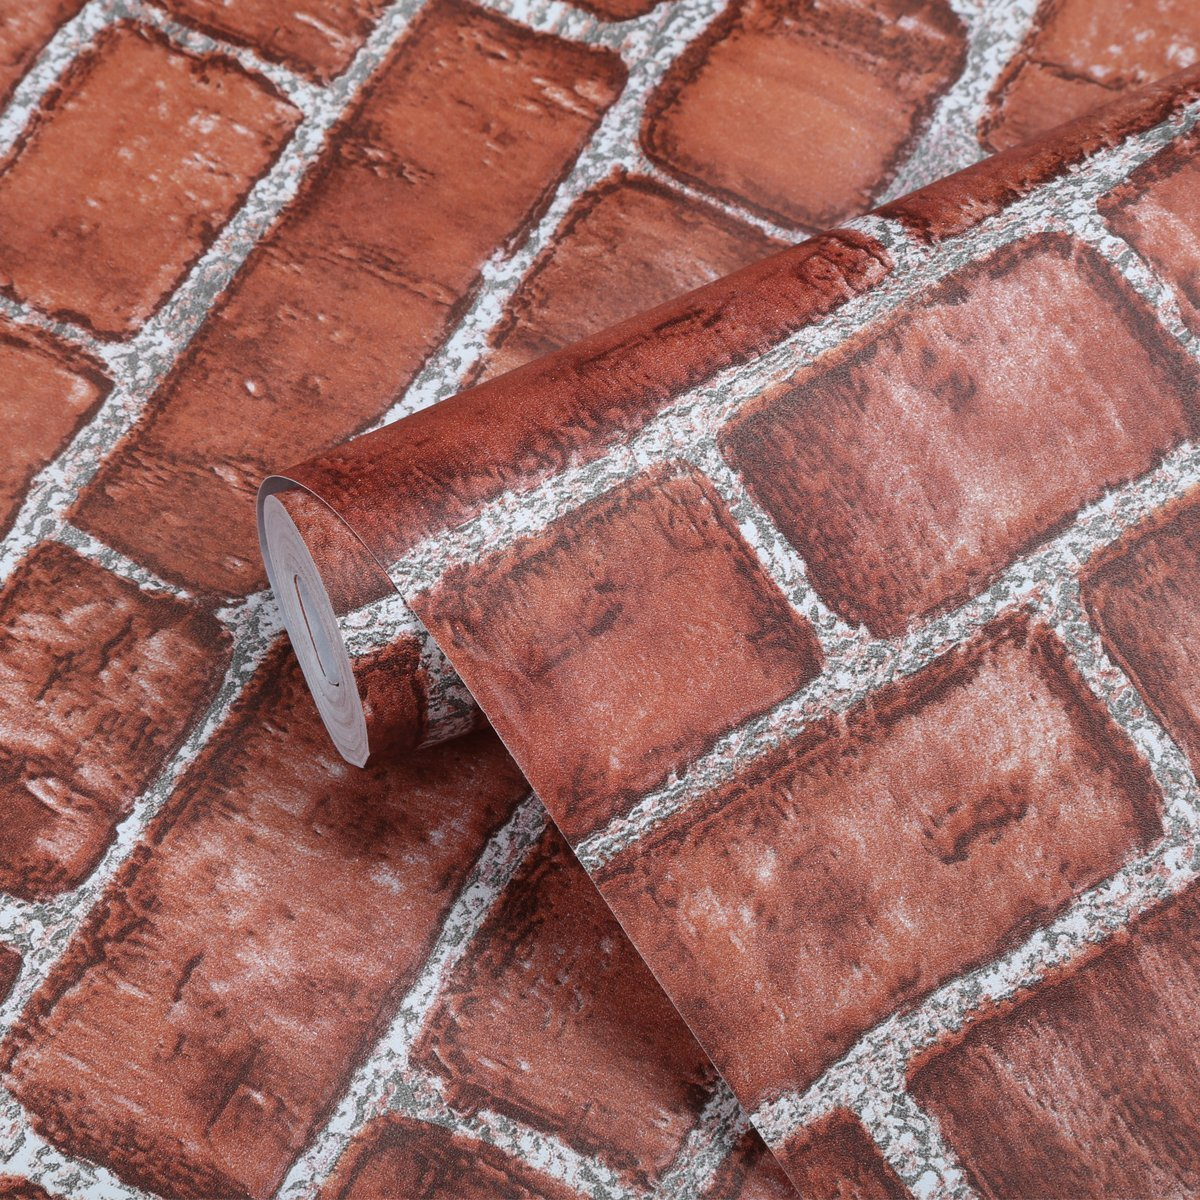 Coavas Red-Brick-Wallpaper 17.7x196.6 Inch Decorative Self Adhesive Fireplace Wallpaper Easy to Stick and Peel Faux Brick Printed Waterproof Stick Paper by Coavas